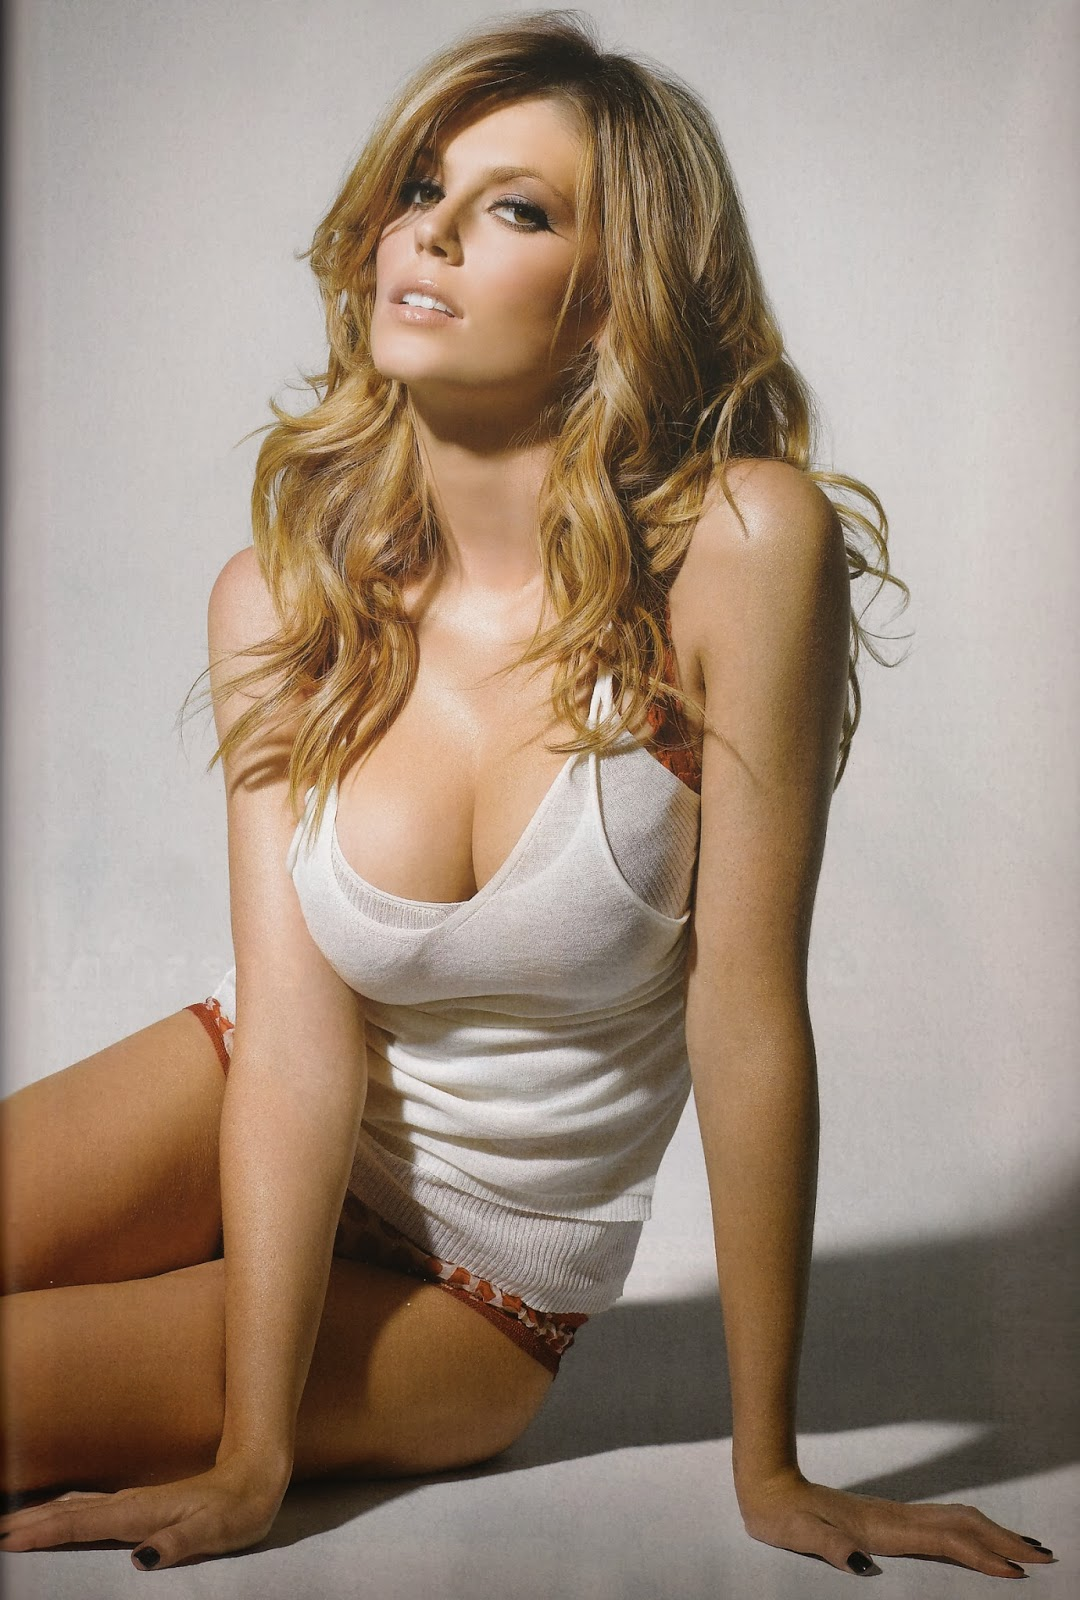 the sky has fallen hot girl of horror 26 diora baird